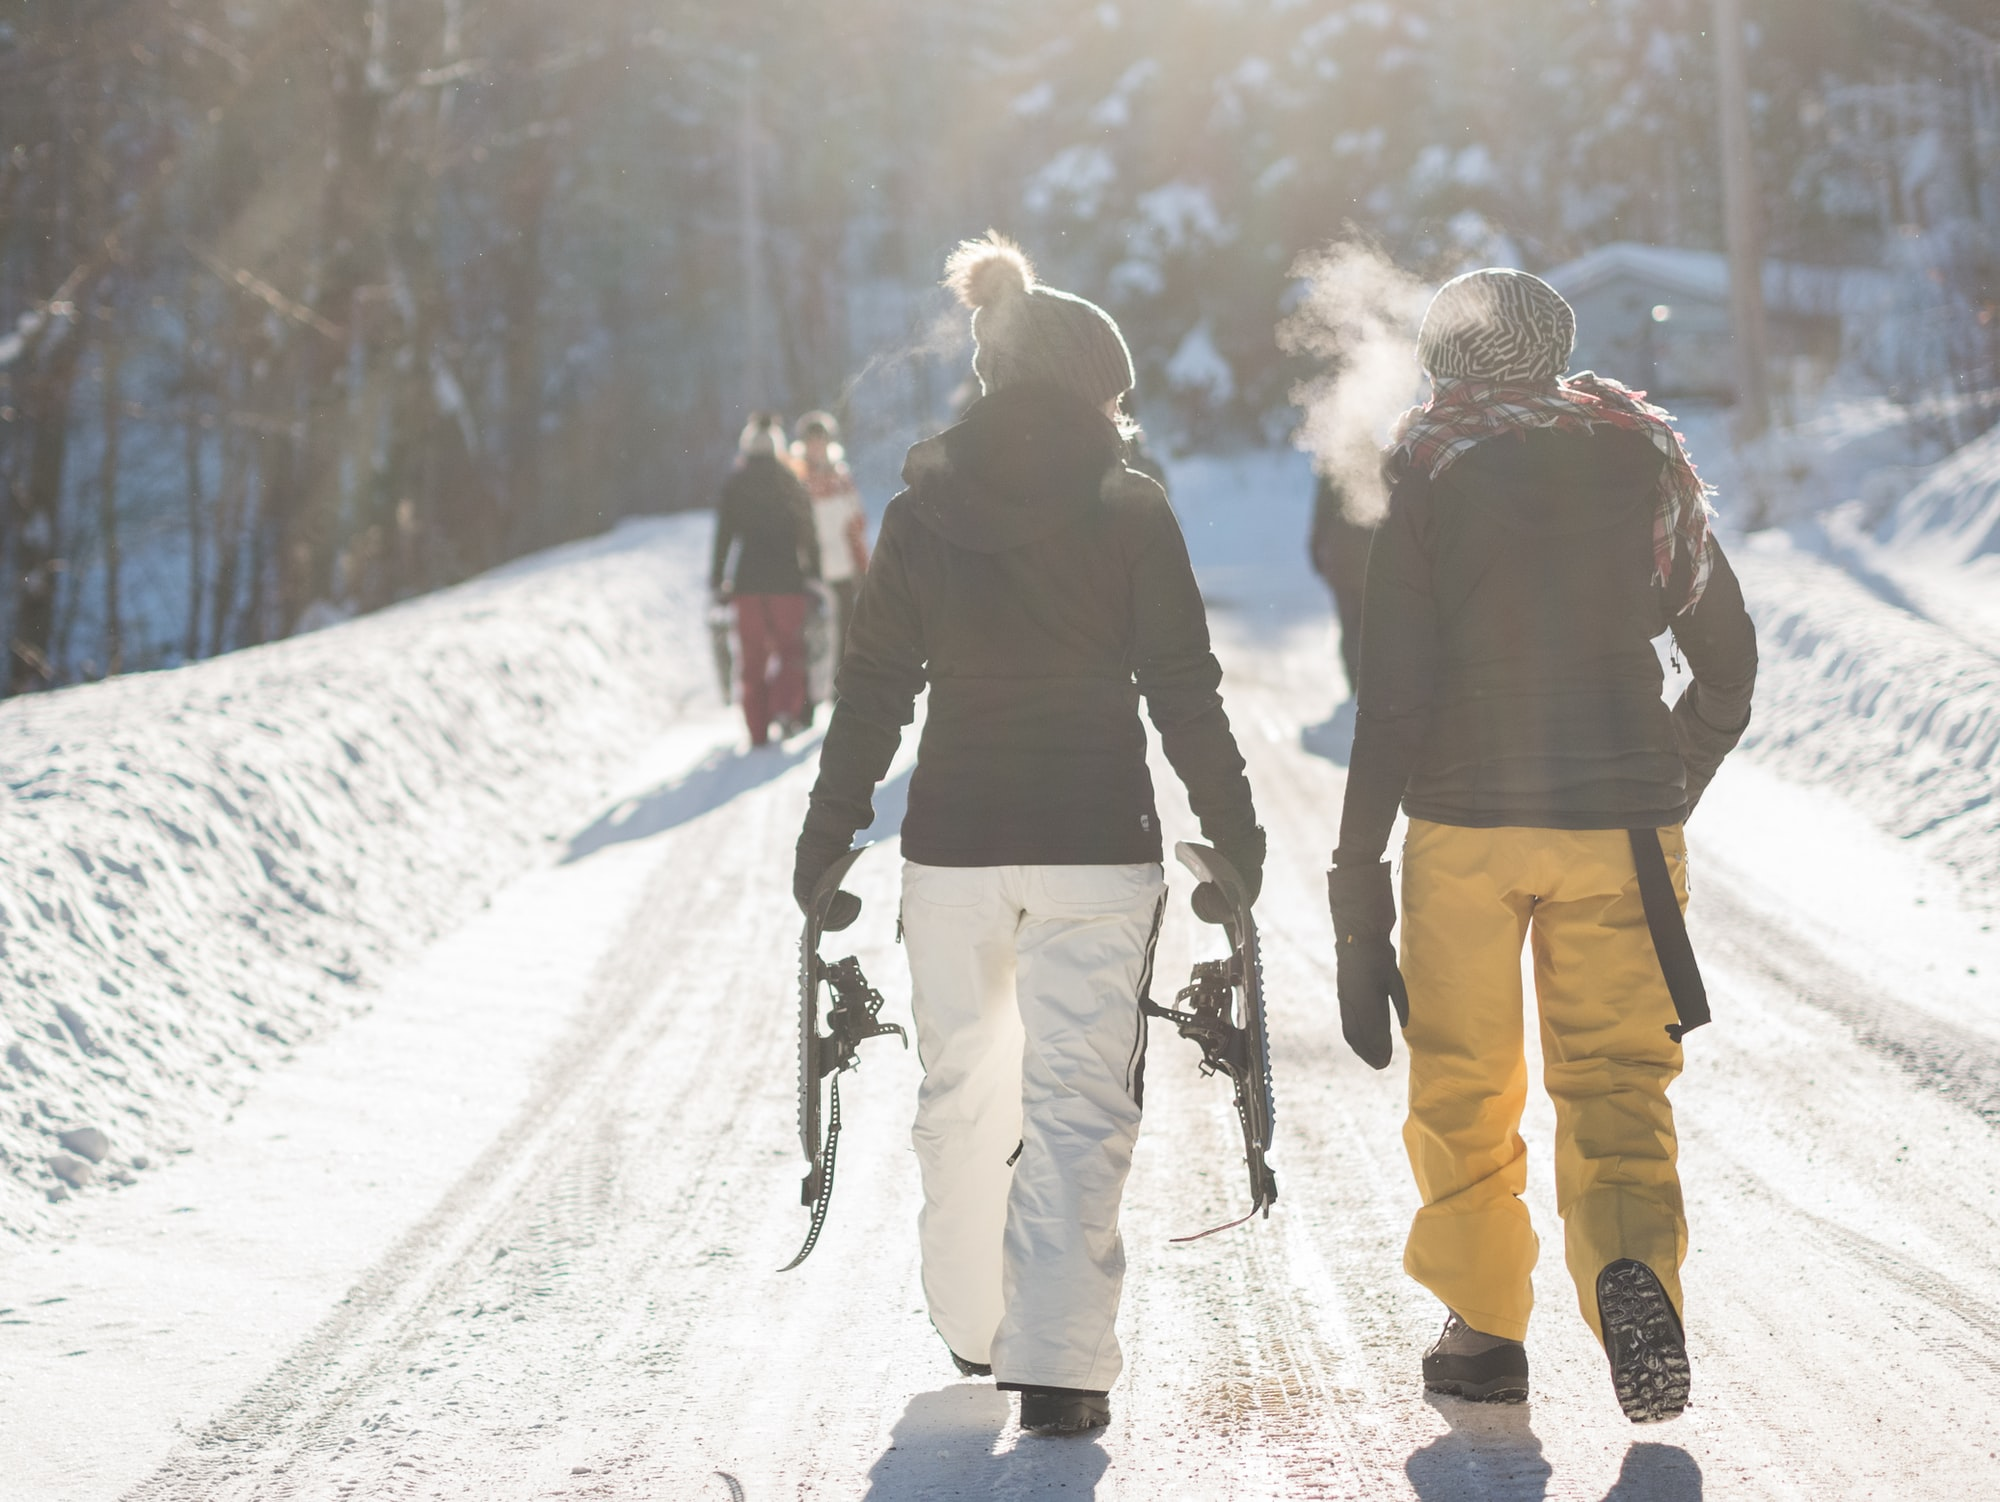 Snowboarders breath on a cold day